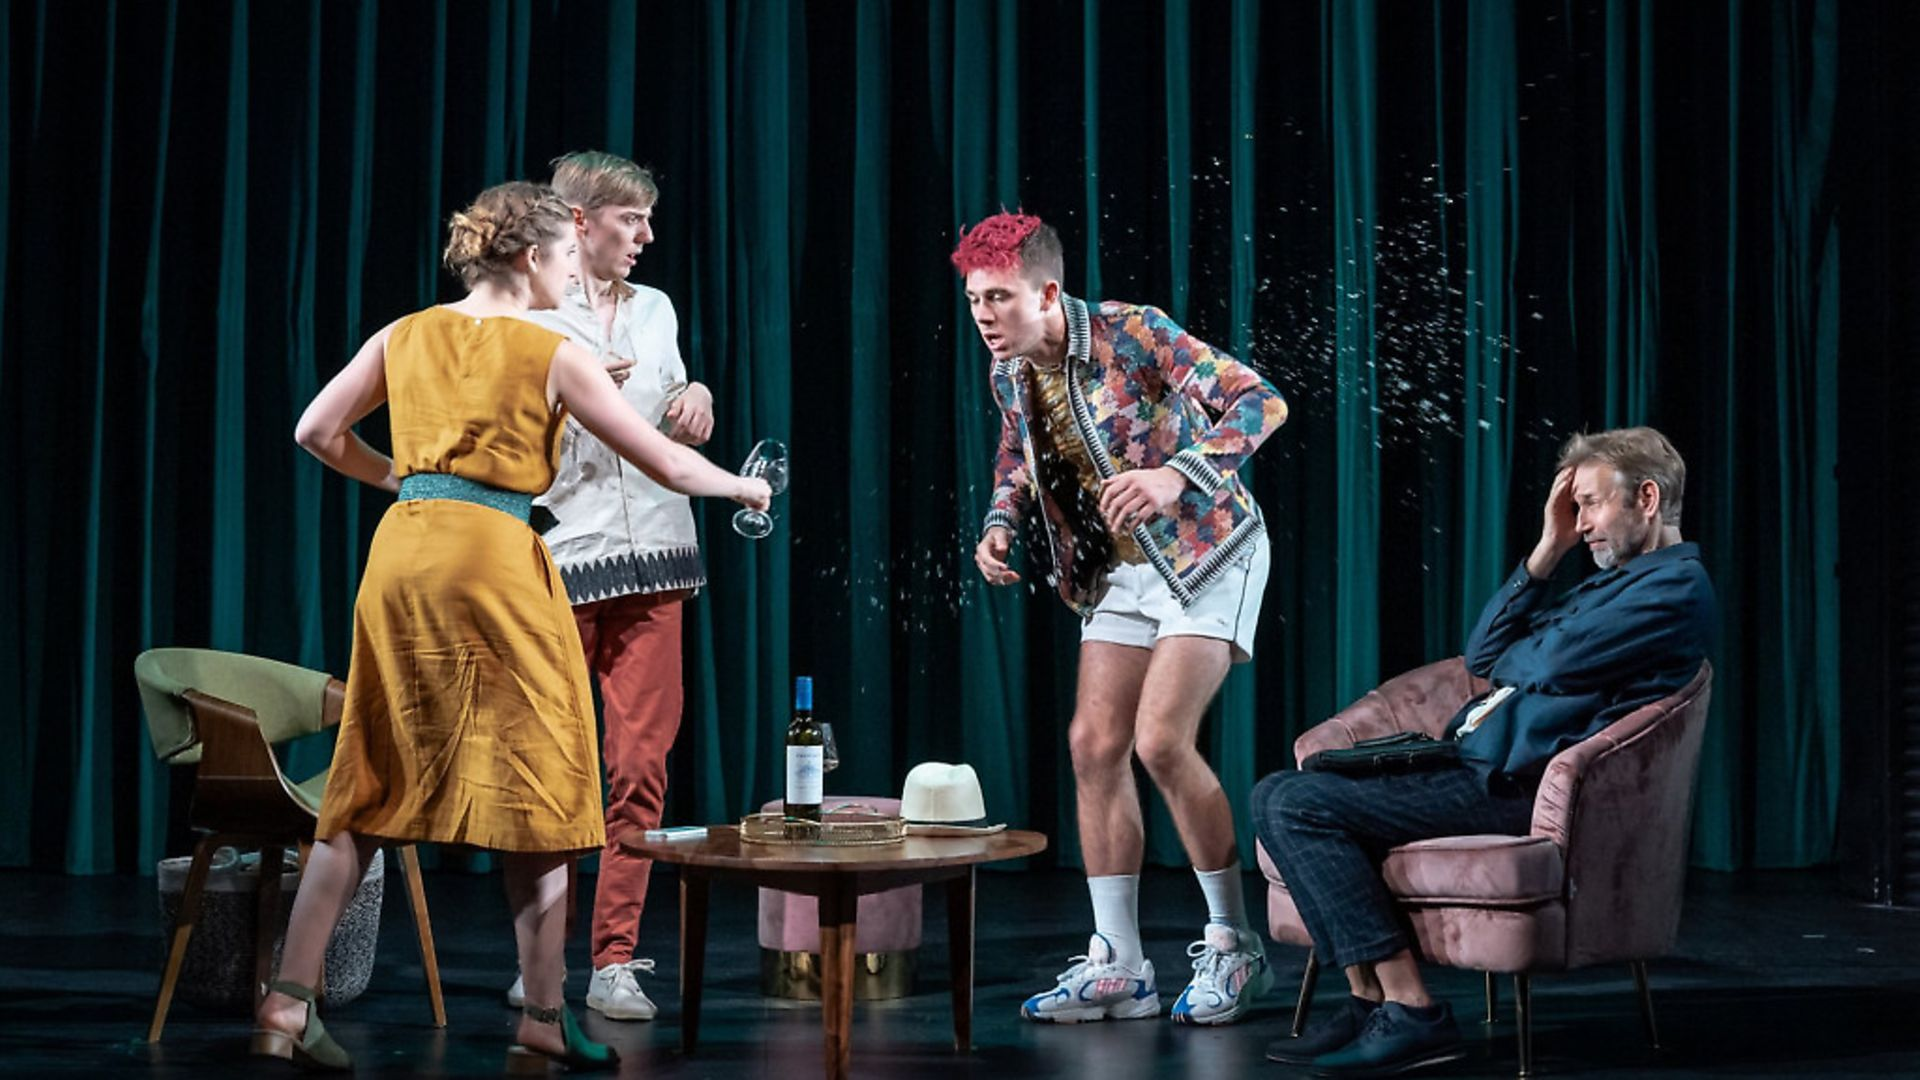 Karen Fishwick (Clare), Joshua James (Finn), Calam Lynch (Cas) and Richard Cant (Ivar) in Wife. Picture: Marc Brenner - Credit: Archant